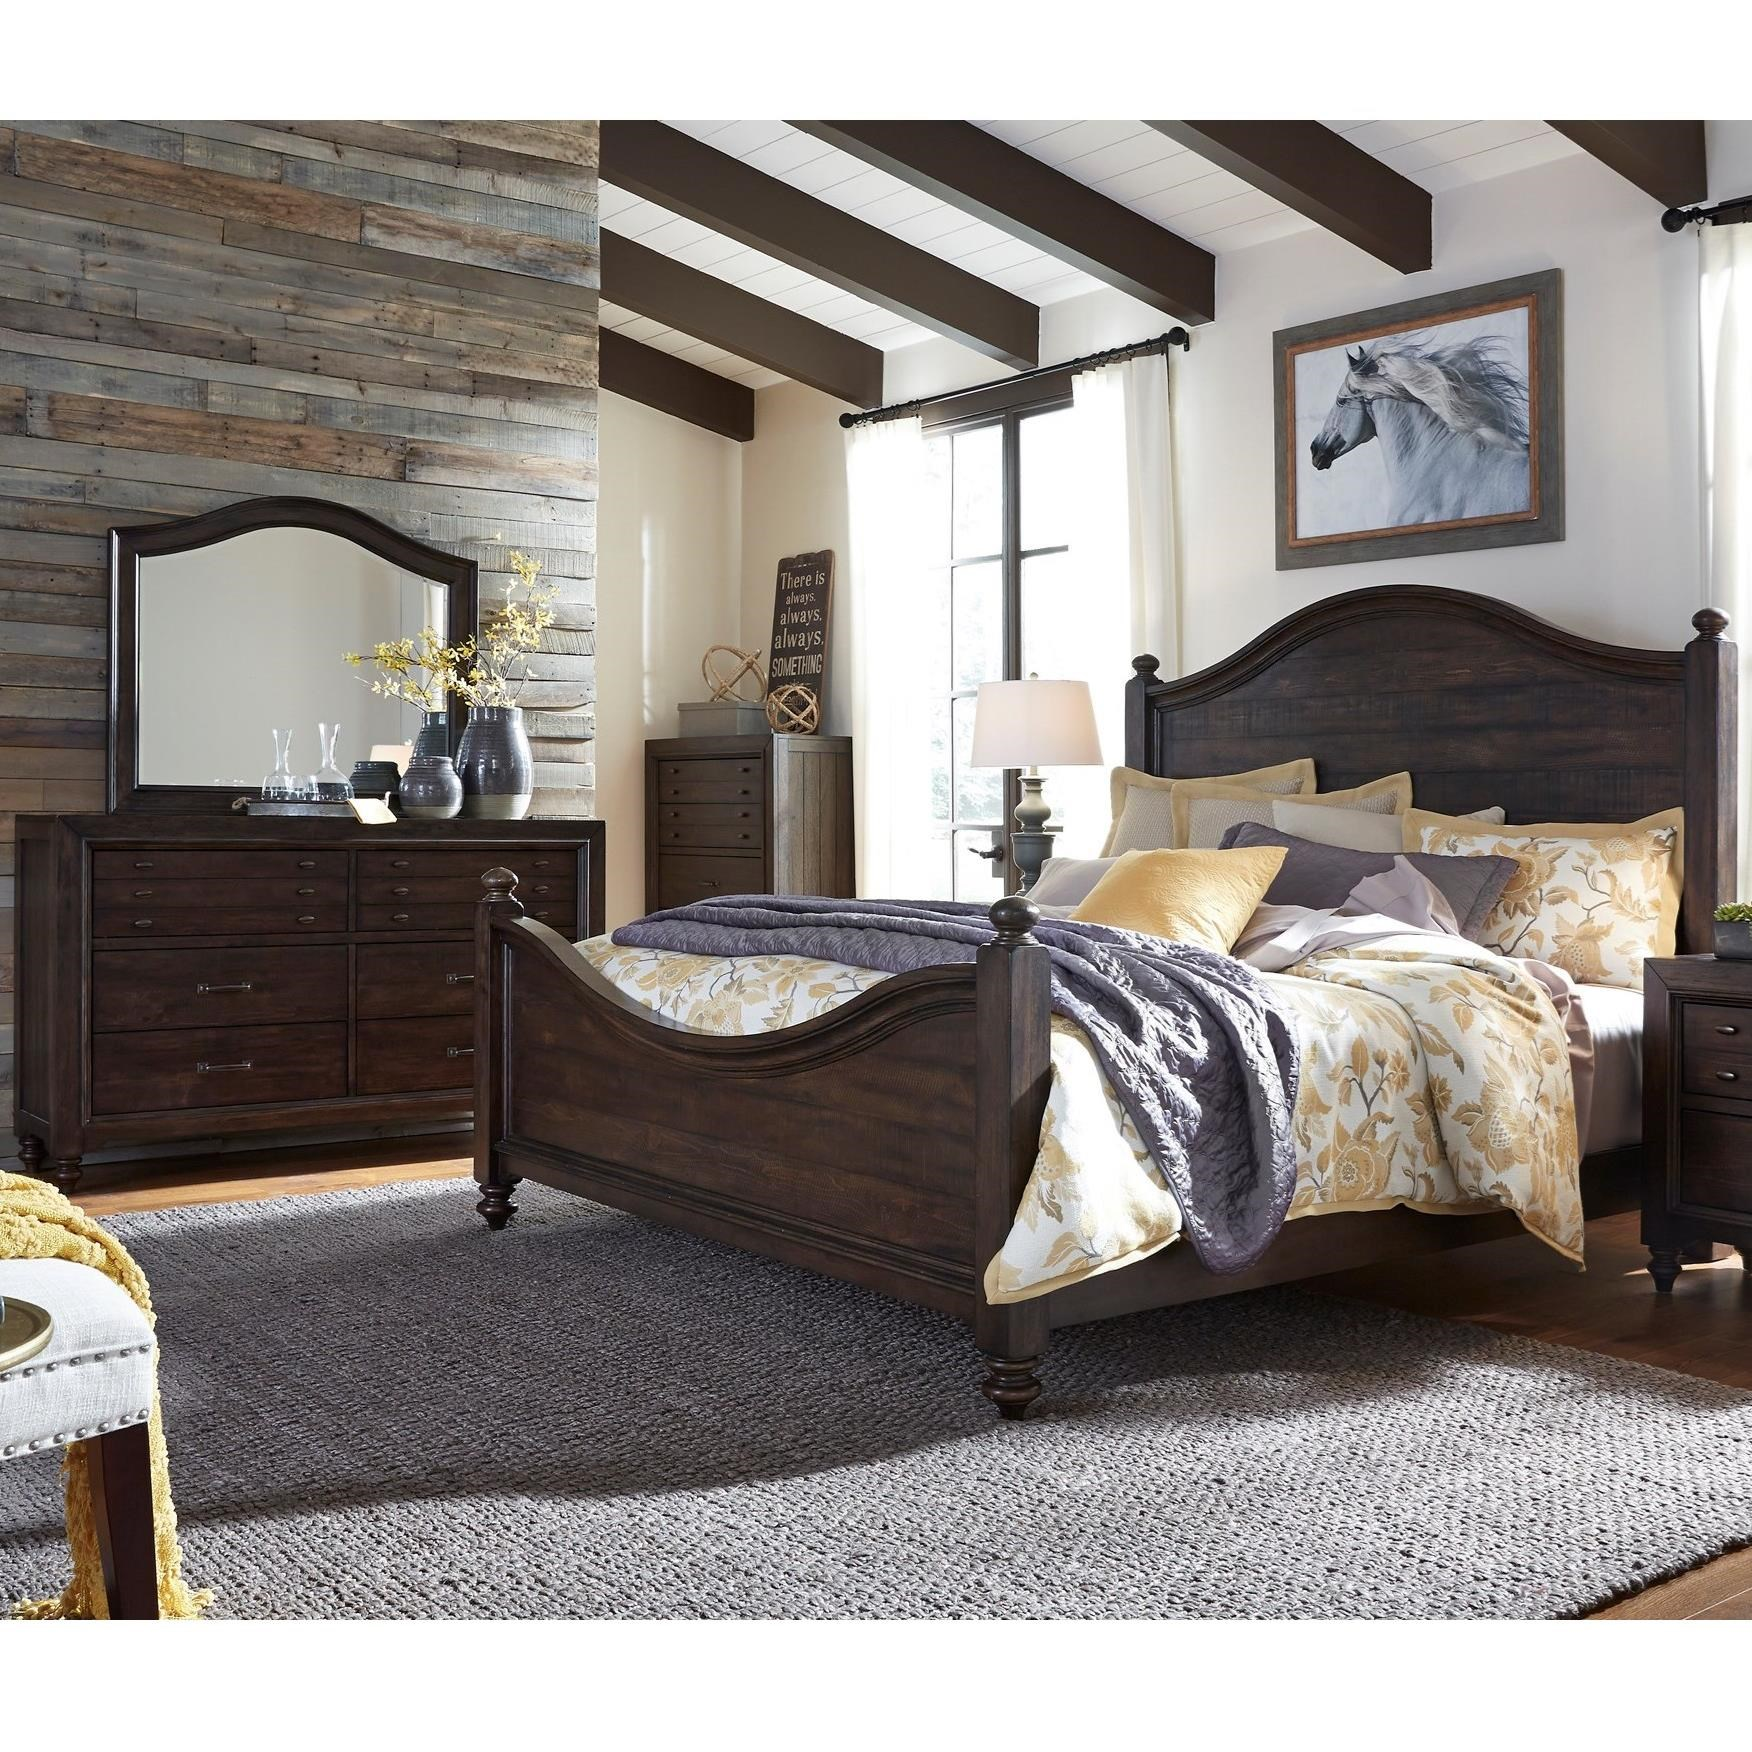 Liberty Furniture Catawba Hills Bedroom Queen Poster Bed Bedroom Group Royal Furniture